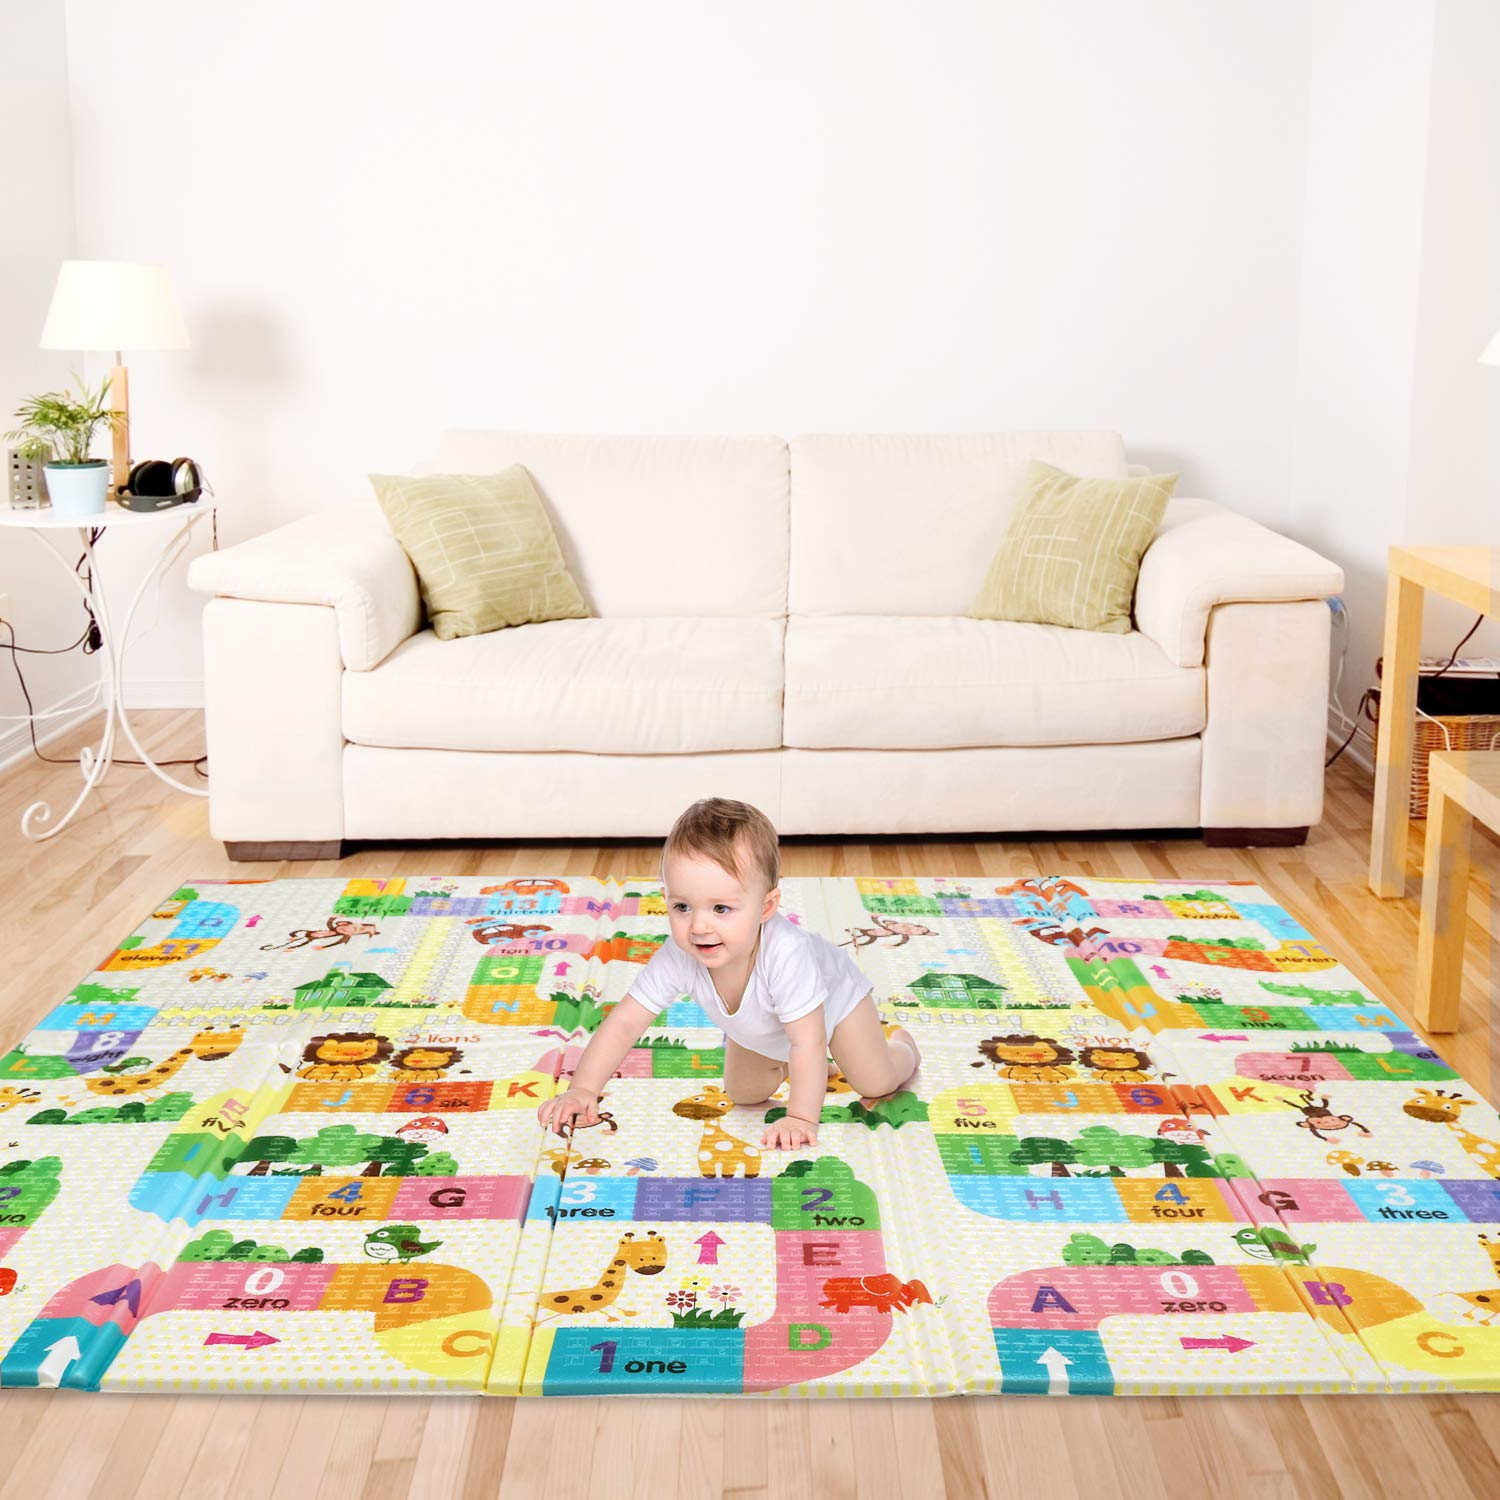 Bammax Play Mat, Folding Mat Baby Crawling Mat Kids Playmat Waterproof Non Toxic for Babies, Infants, Toddlers, 70 x 77.5 x 0.6